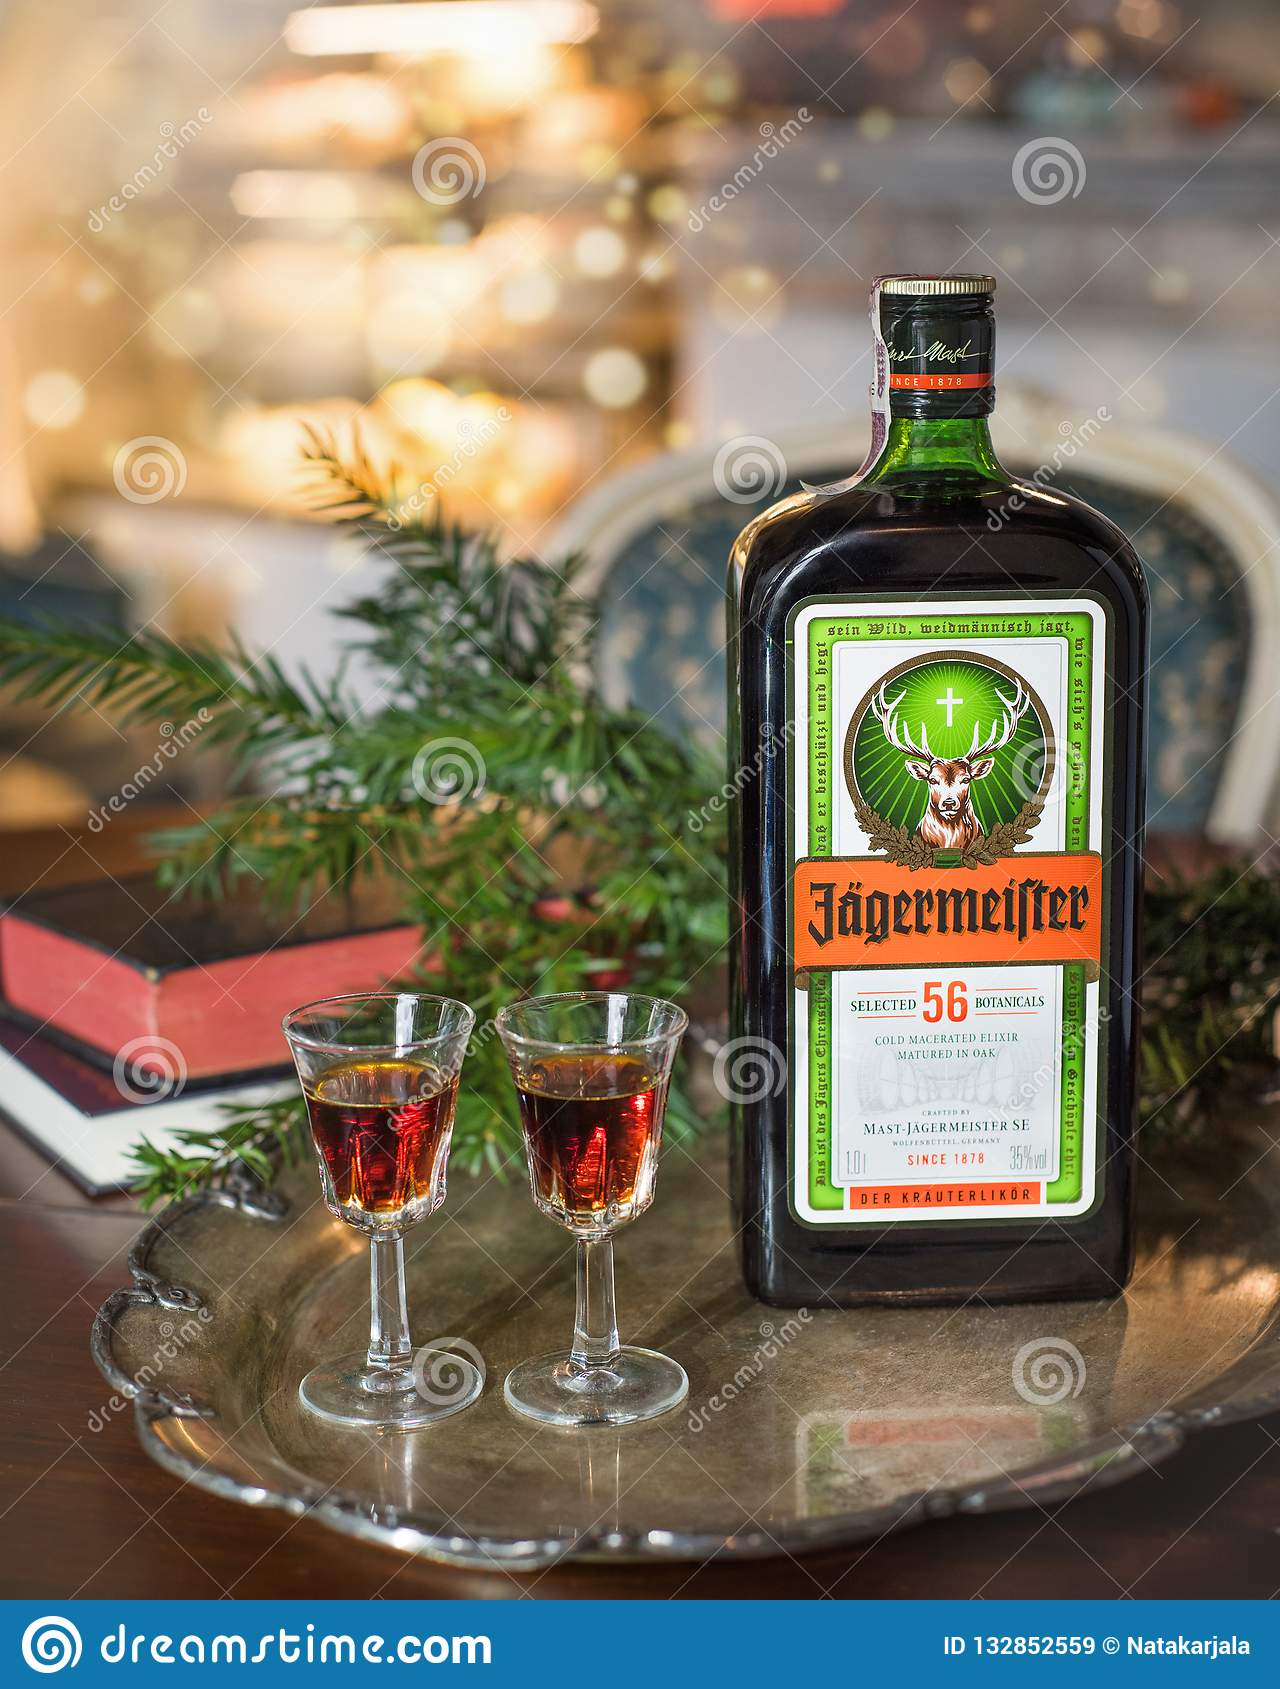 Happy new year or christmas background with Jagermeister alcohol drink, elixir. Bottle of Jagermeister with glasses on a vintage t